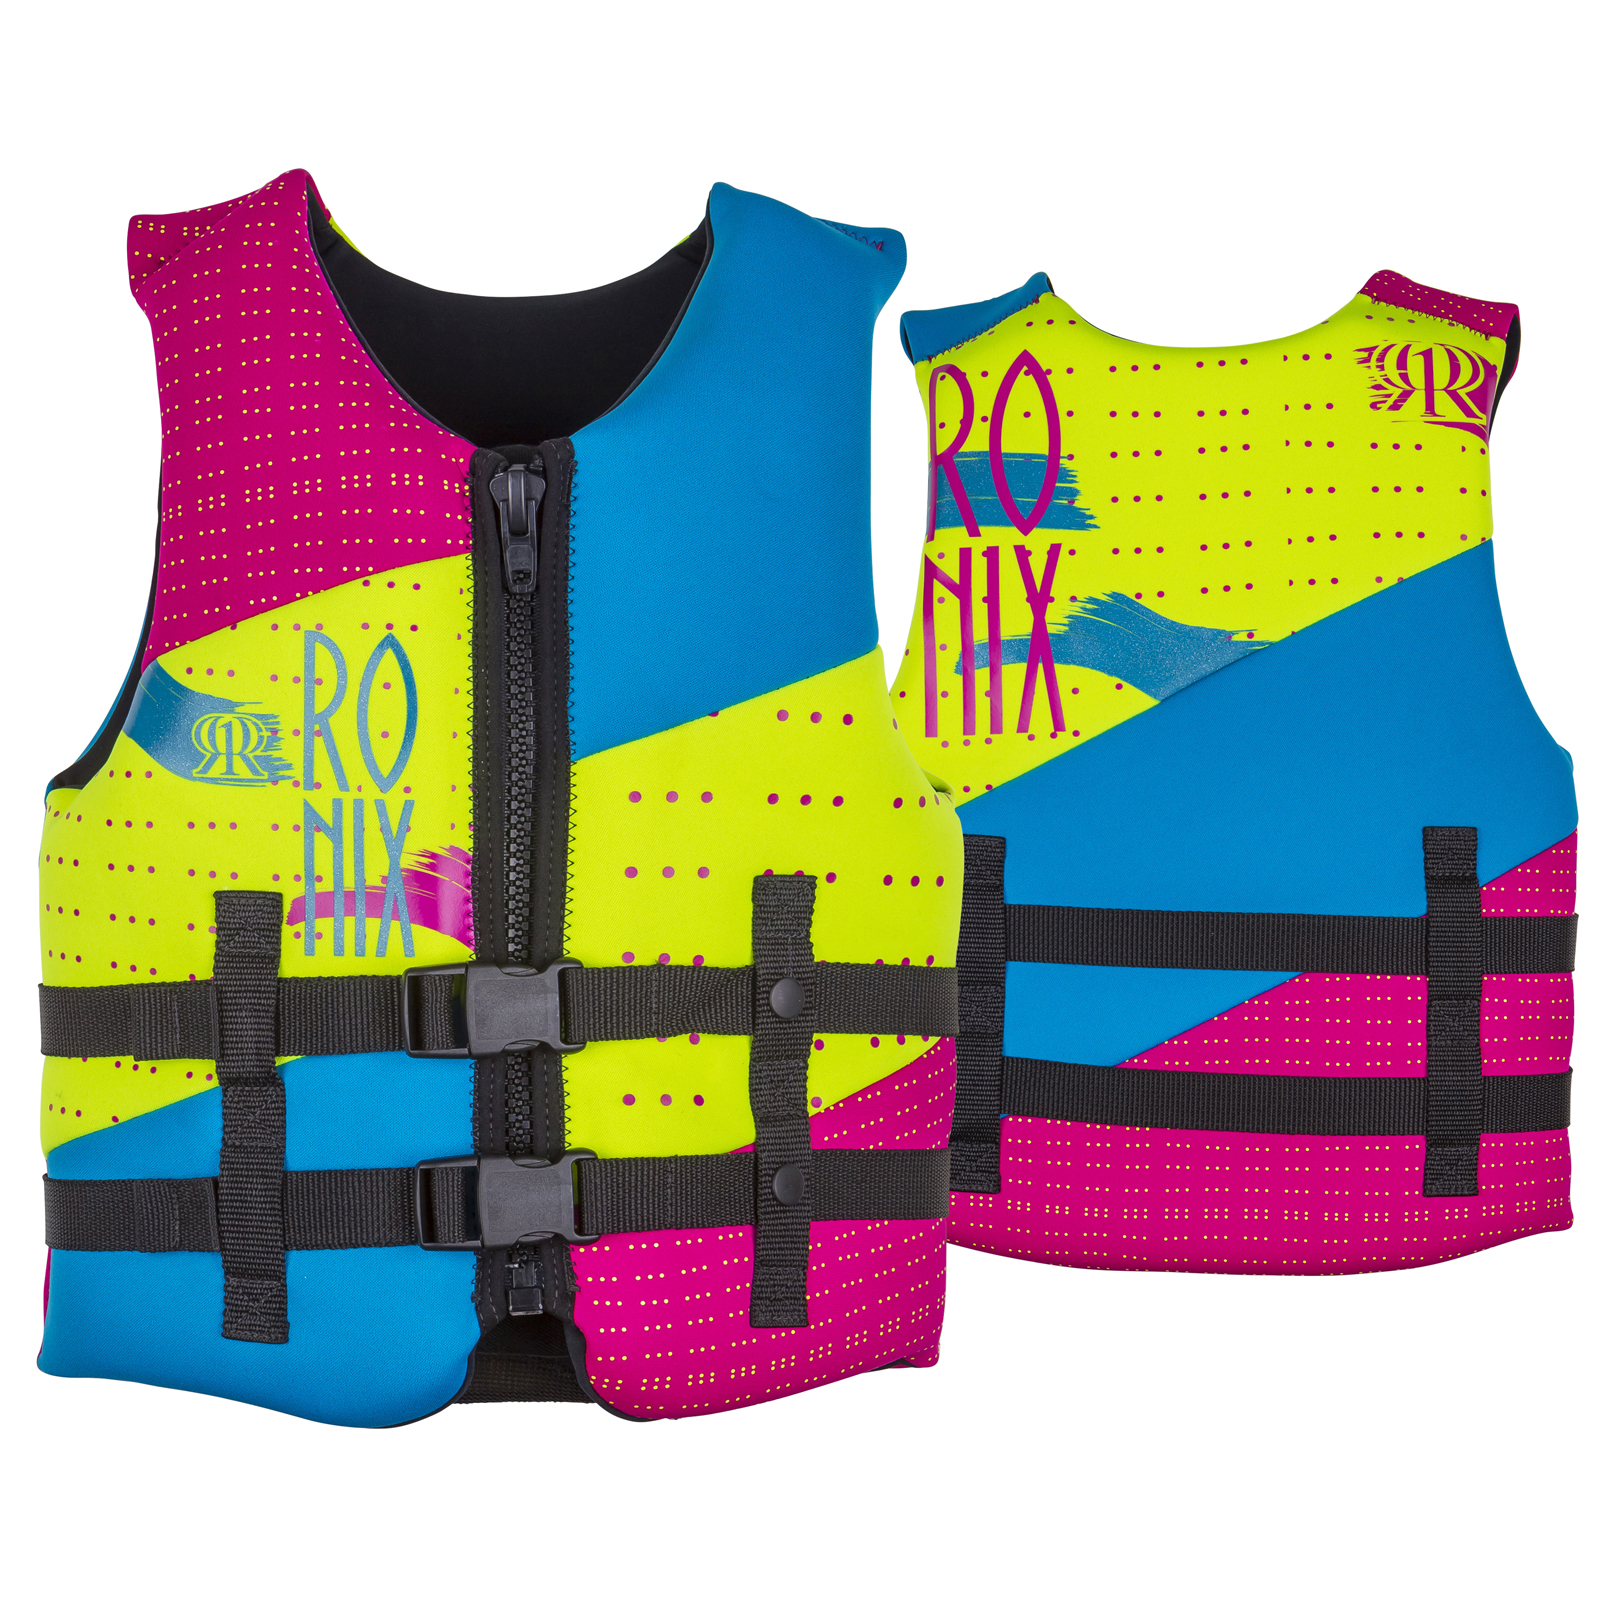 AUGUST GIRL'S YOUTH VEST RONIX 2017